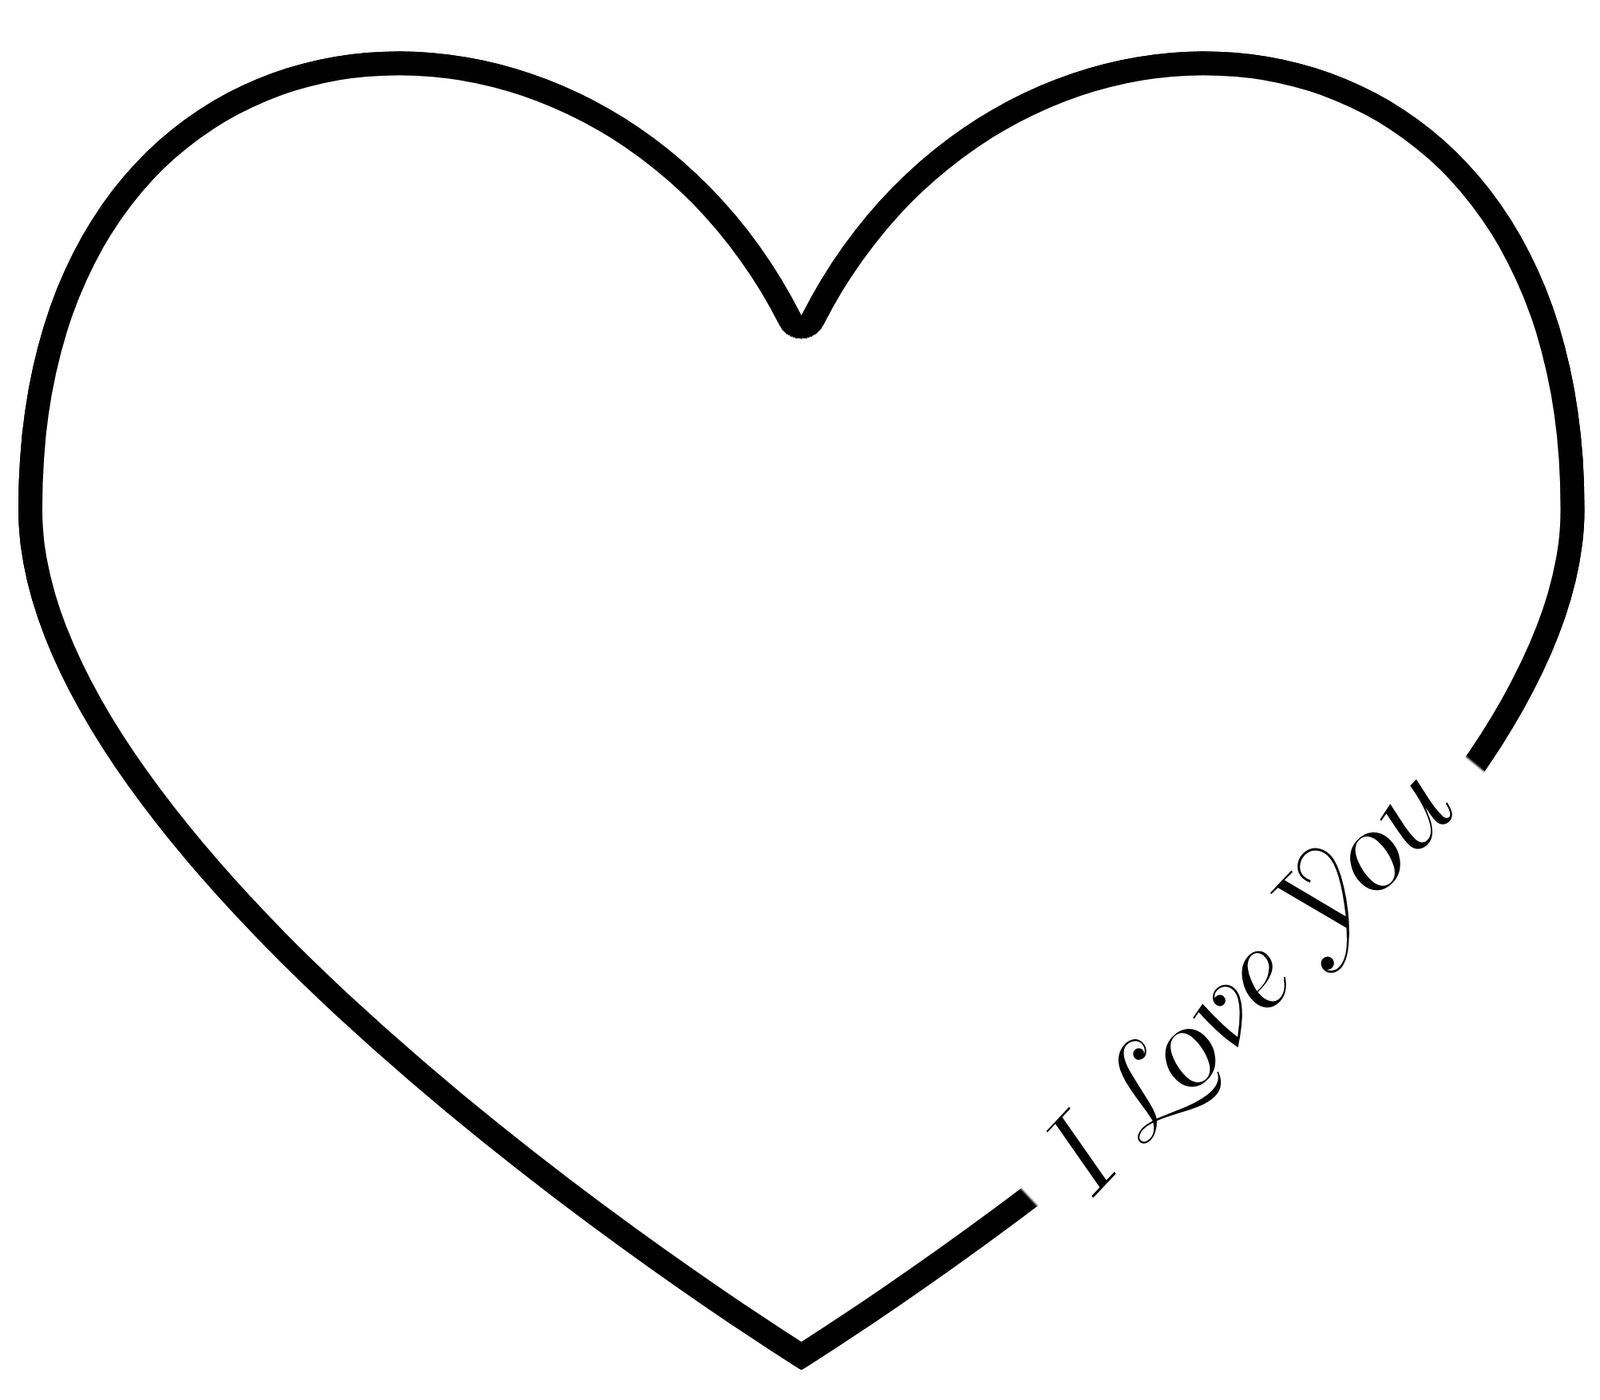 Carved Heart Outline Clipart 20 Free Cliparts